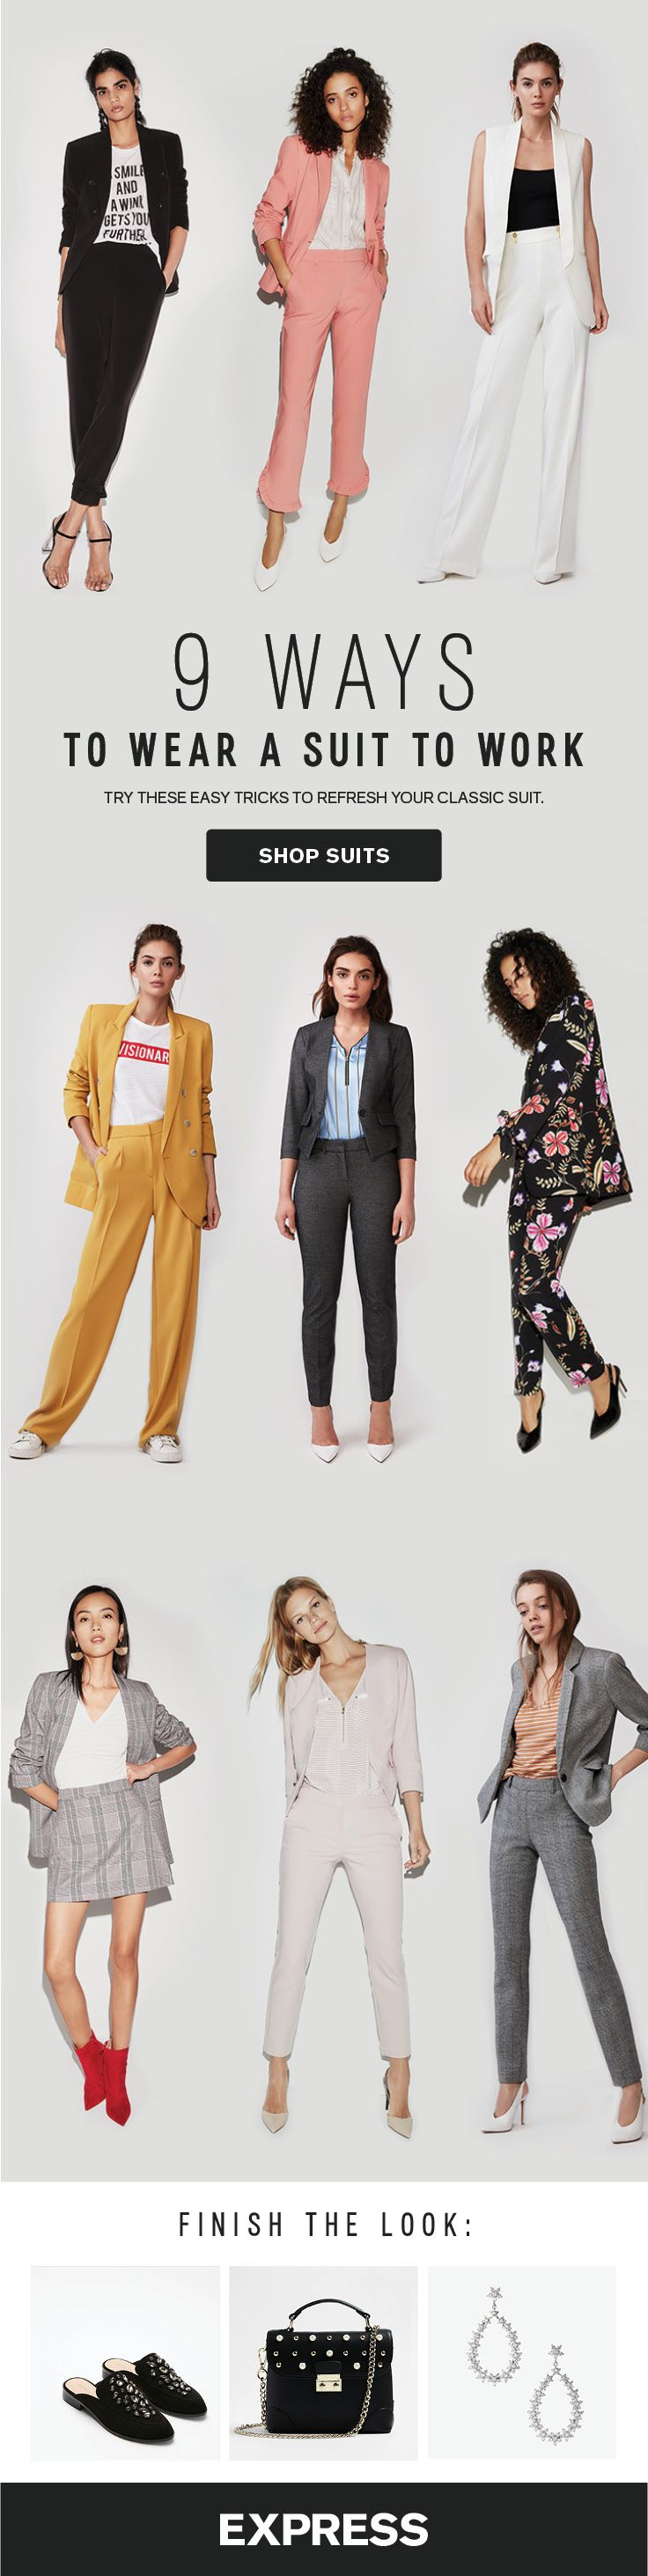 A classic women's suit is a staple for any boss babe's closet, but suits for women can easily get stale. Mix it up with bright colors, bold stripes, and floral patterns for work outfits. Add accessories like red booties for women and statement earrings to step up your suit style this spring.